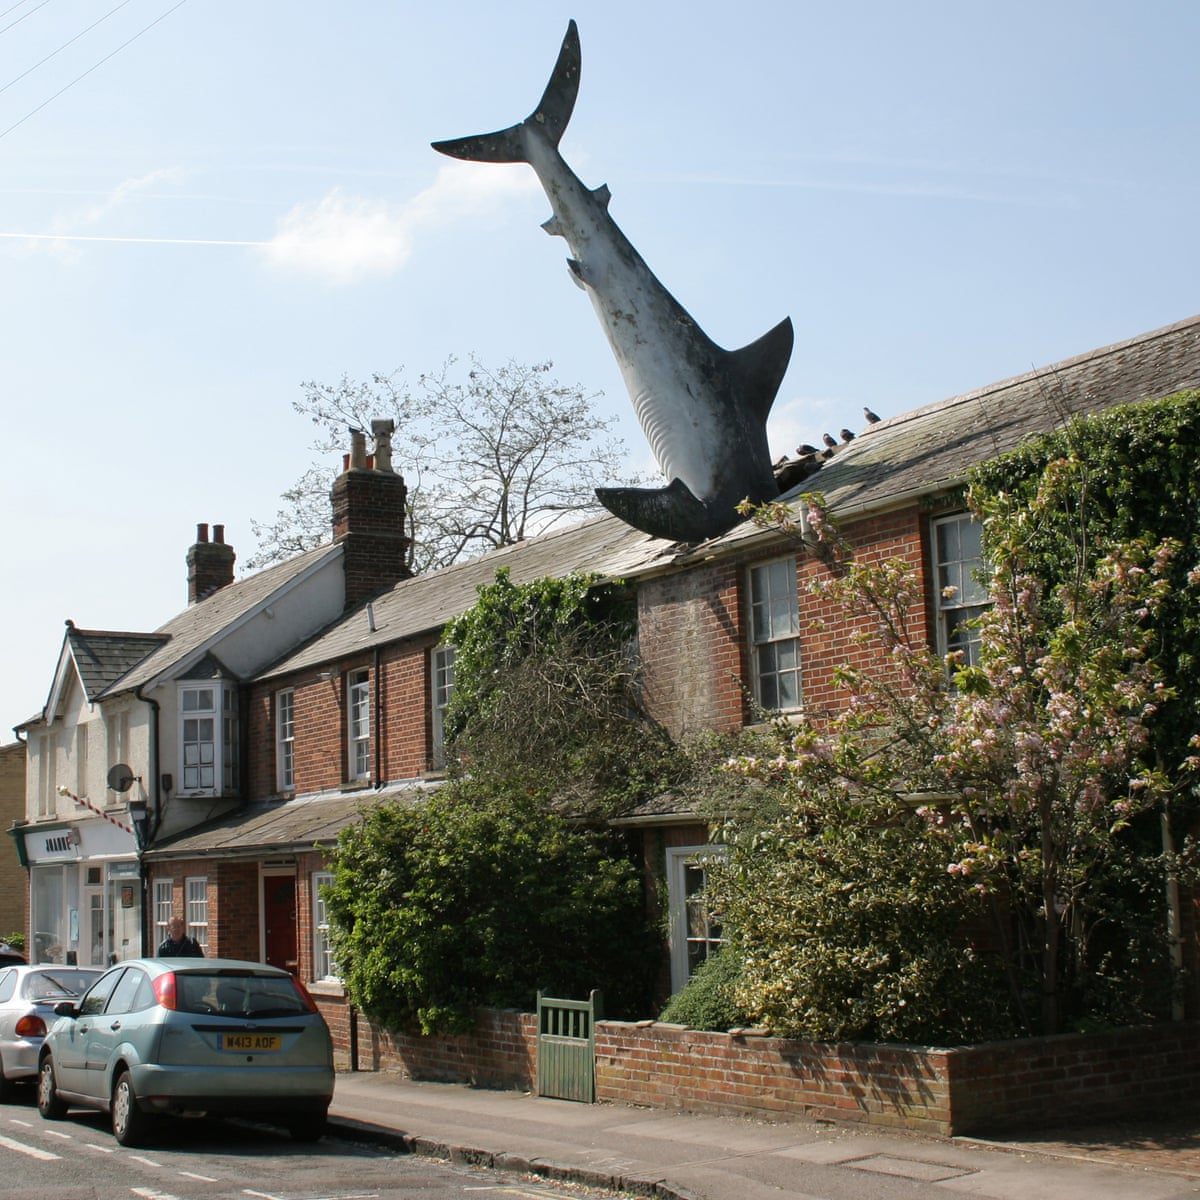 A house in a row of several on the street has a shark's head crashed through its roof. The body of the shark is stiff and suspended on top of the house.